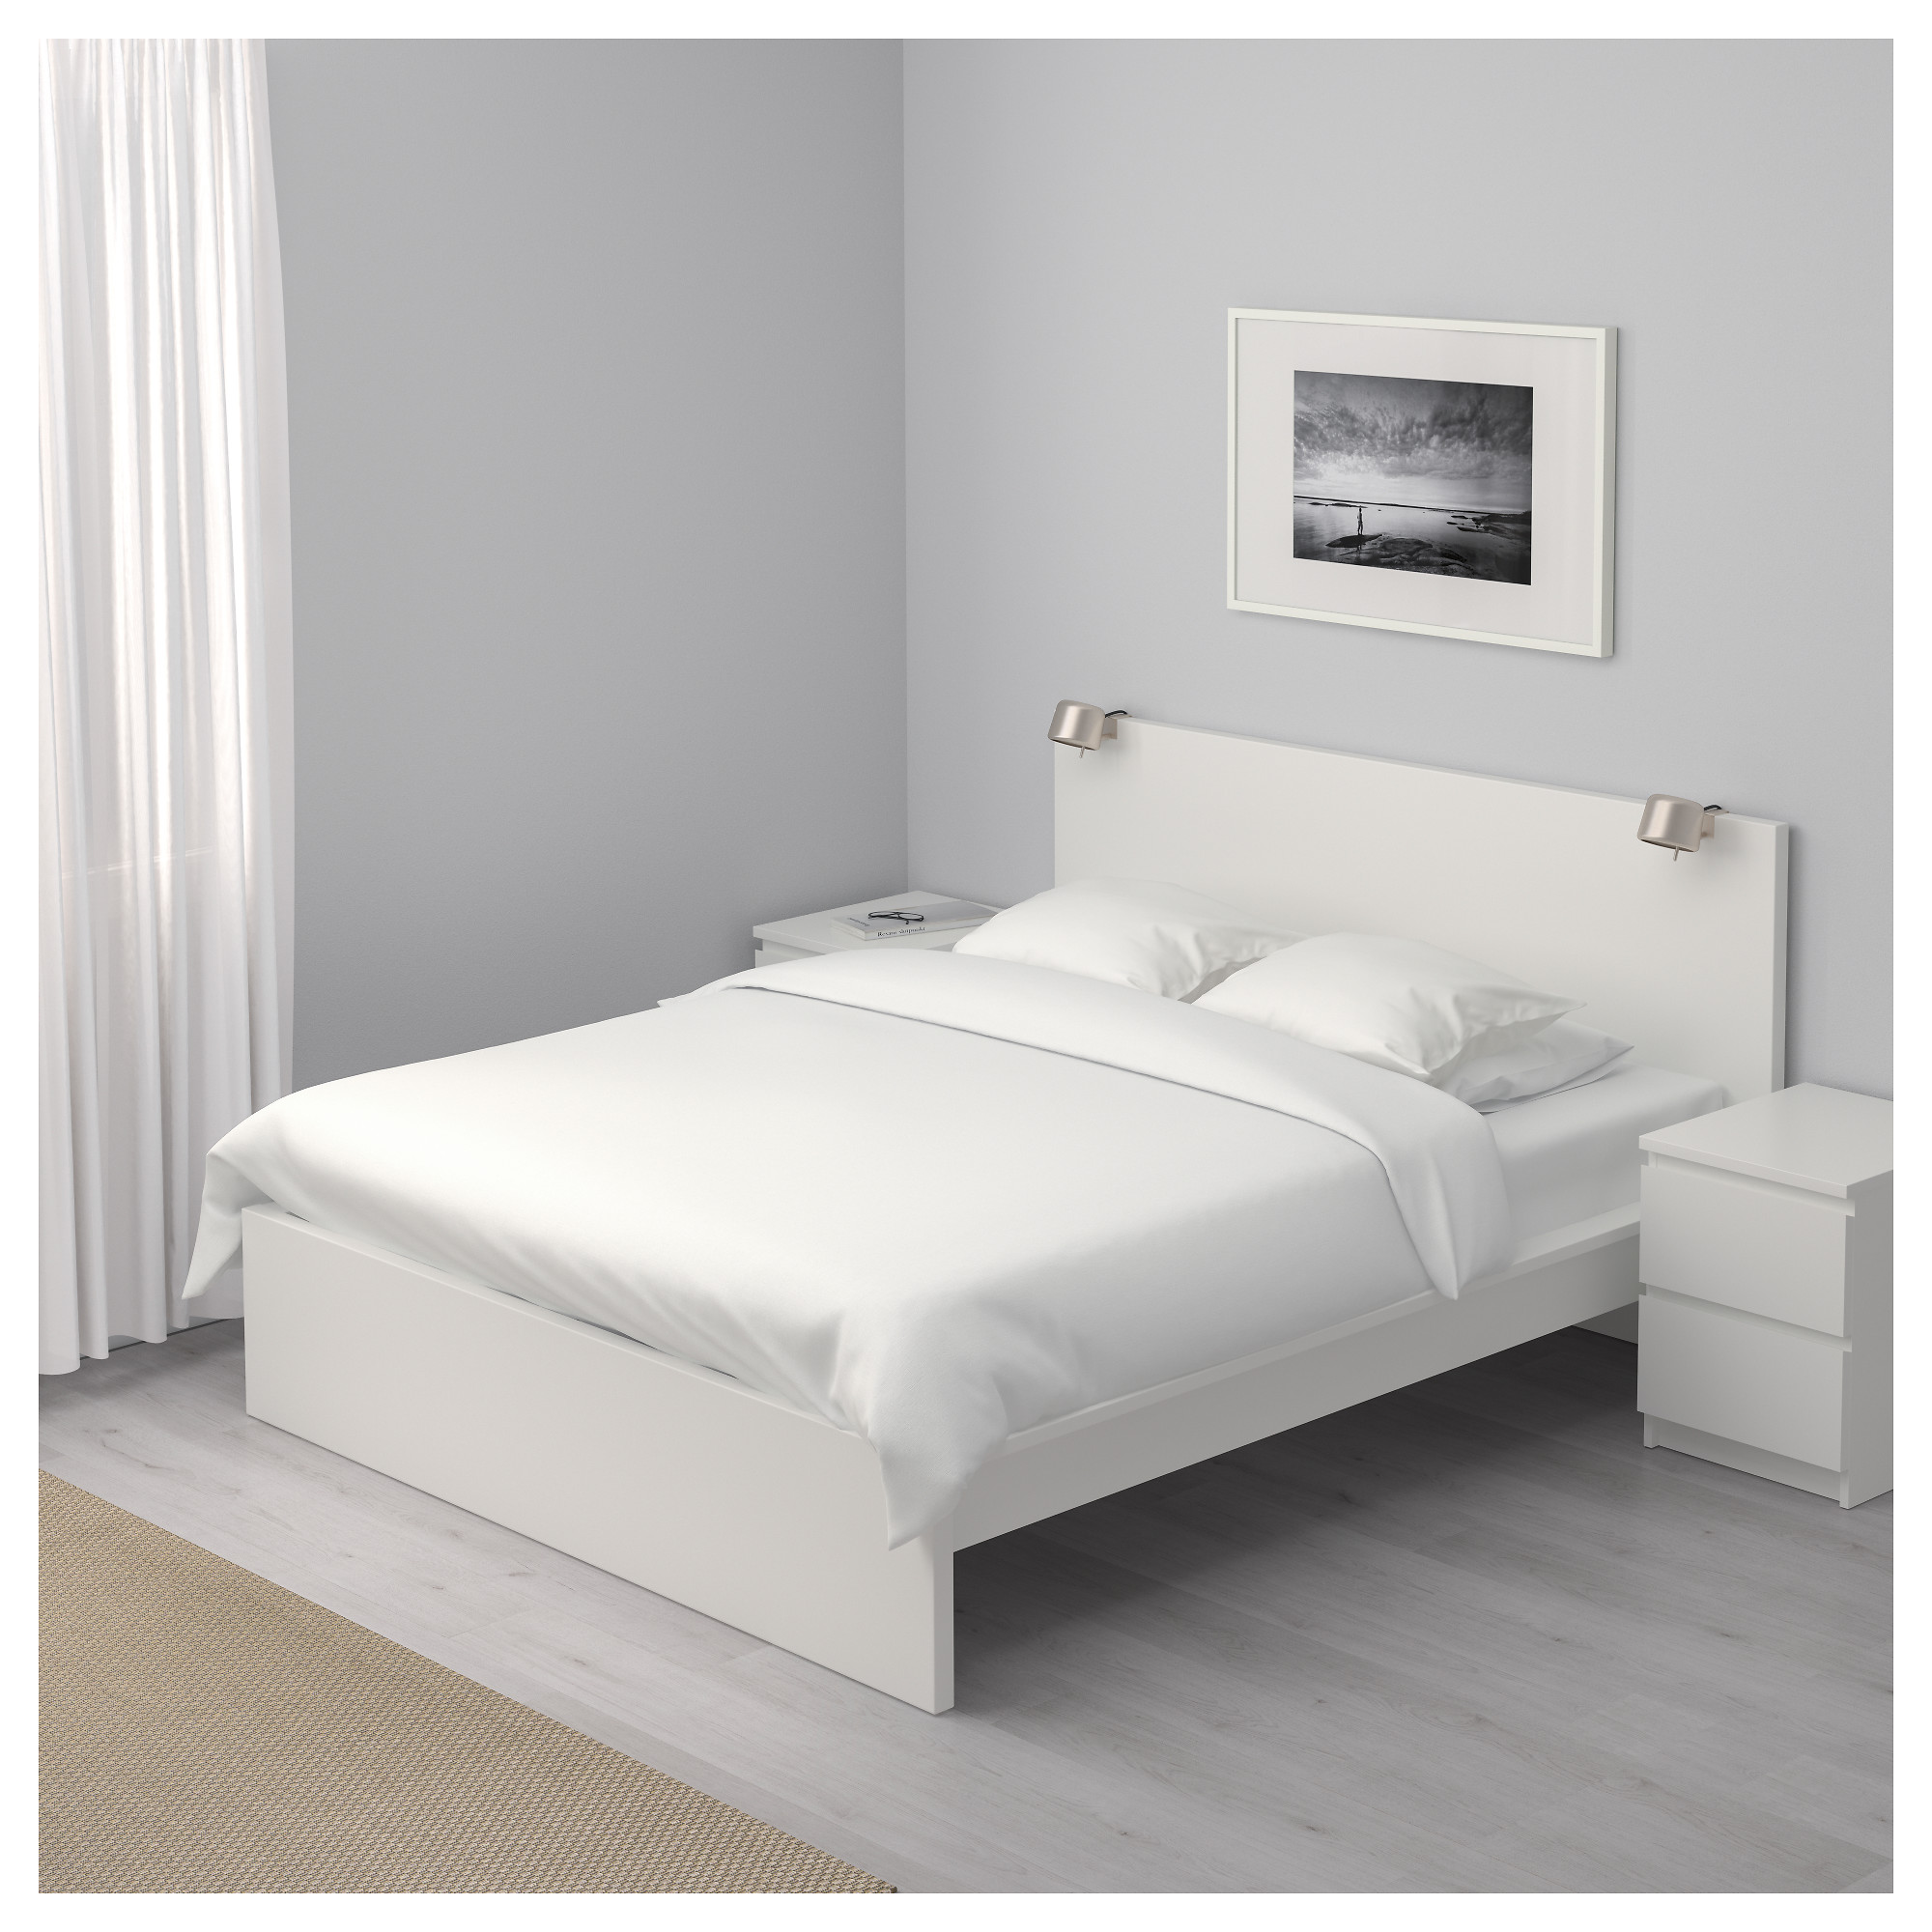 frame size frames white platform without wood bed twin drawer black headboard with bedroom steel queen full drawers wooden